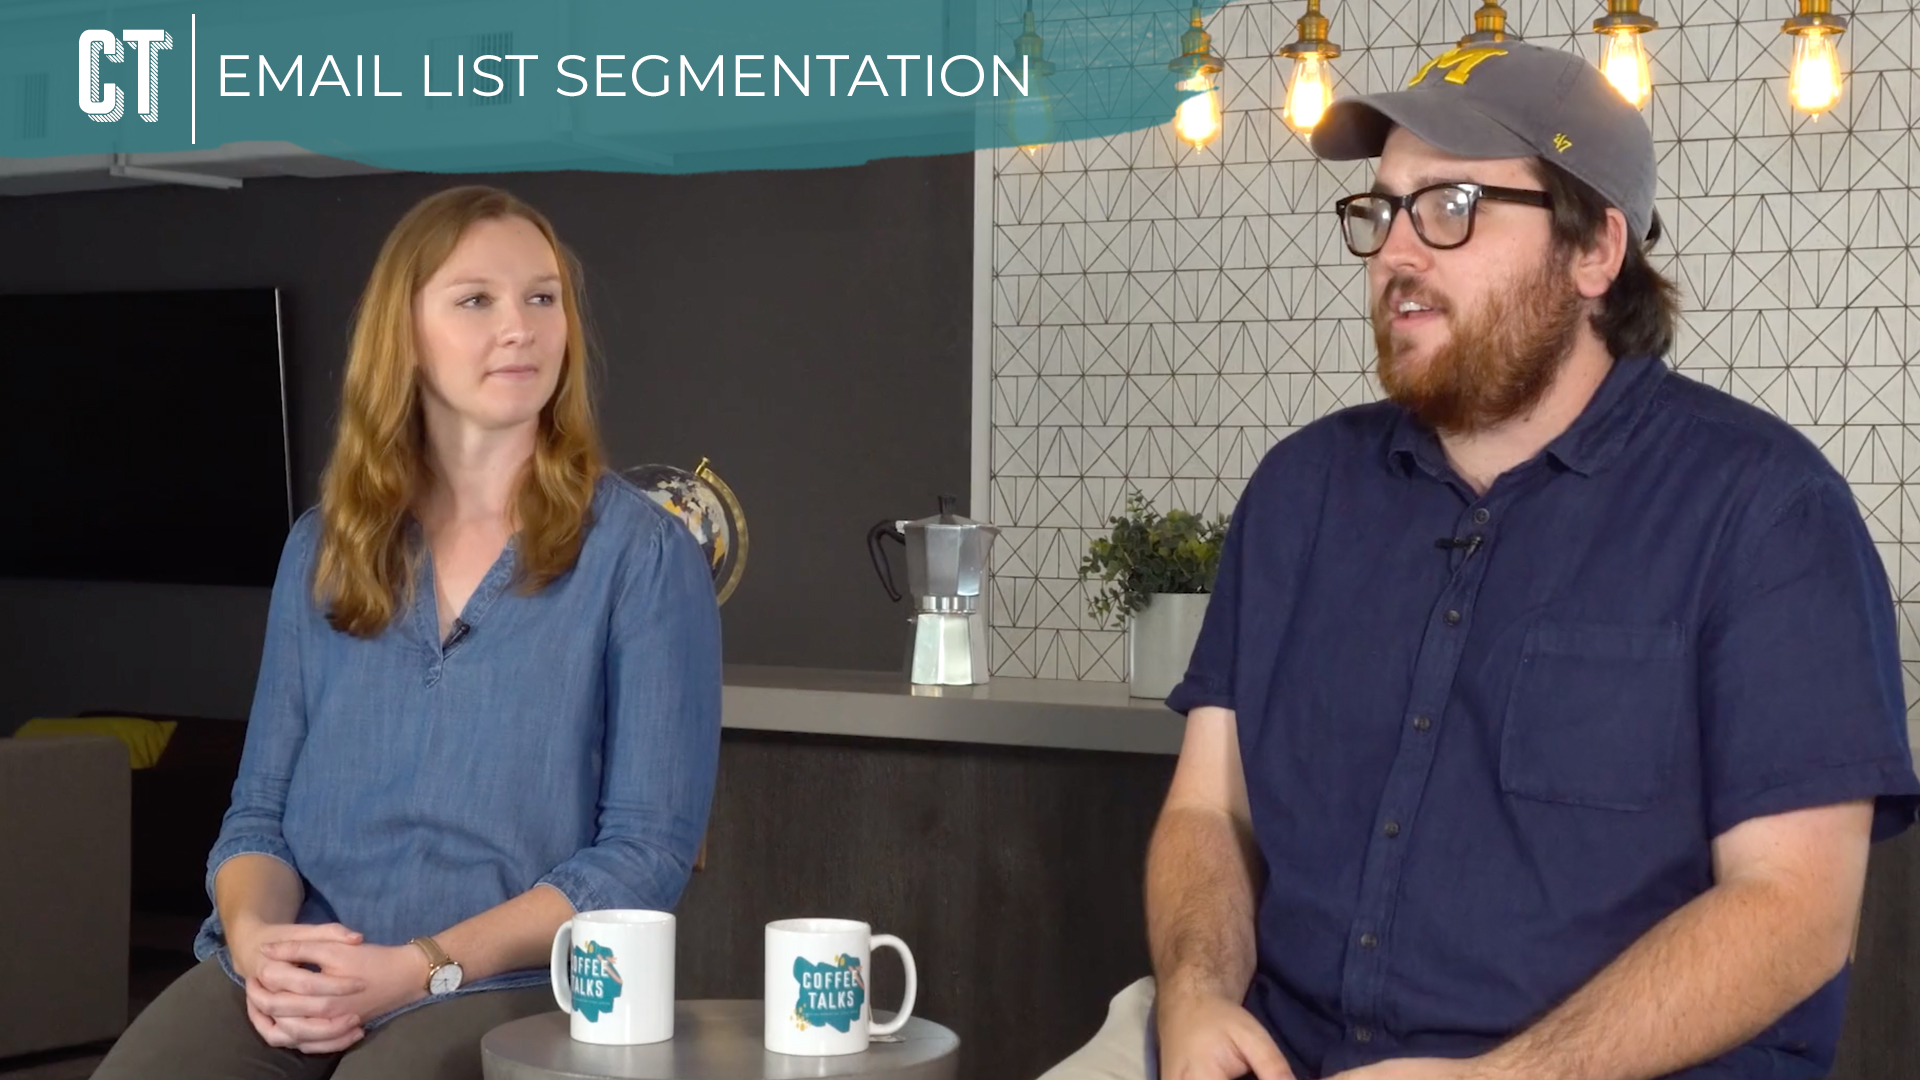 coffee talks bryan kara email list segmentation